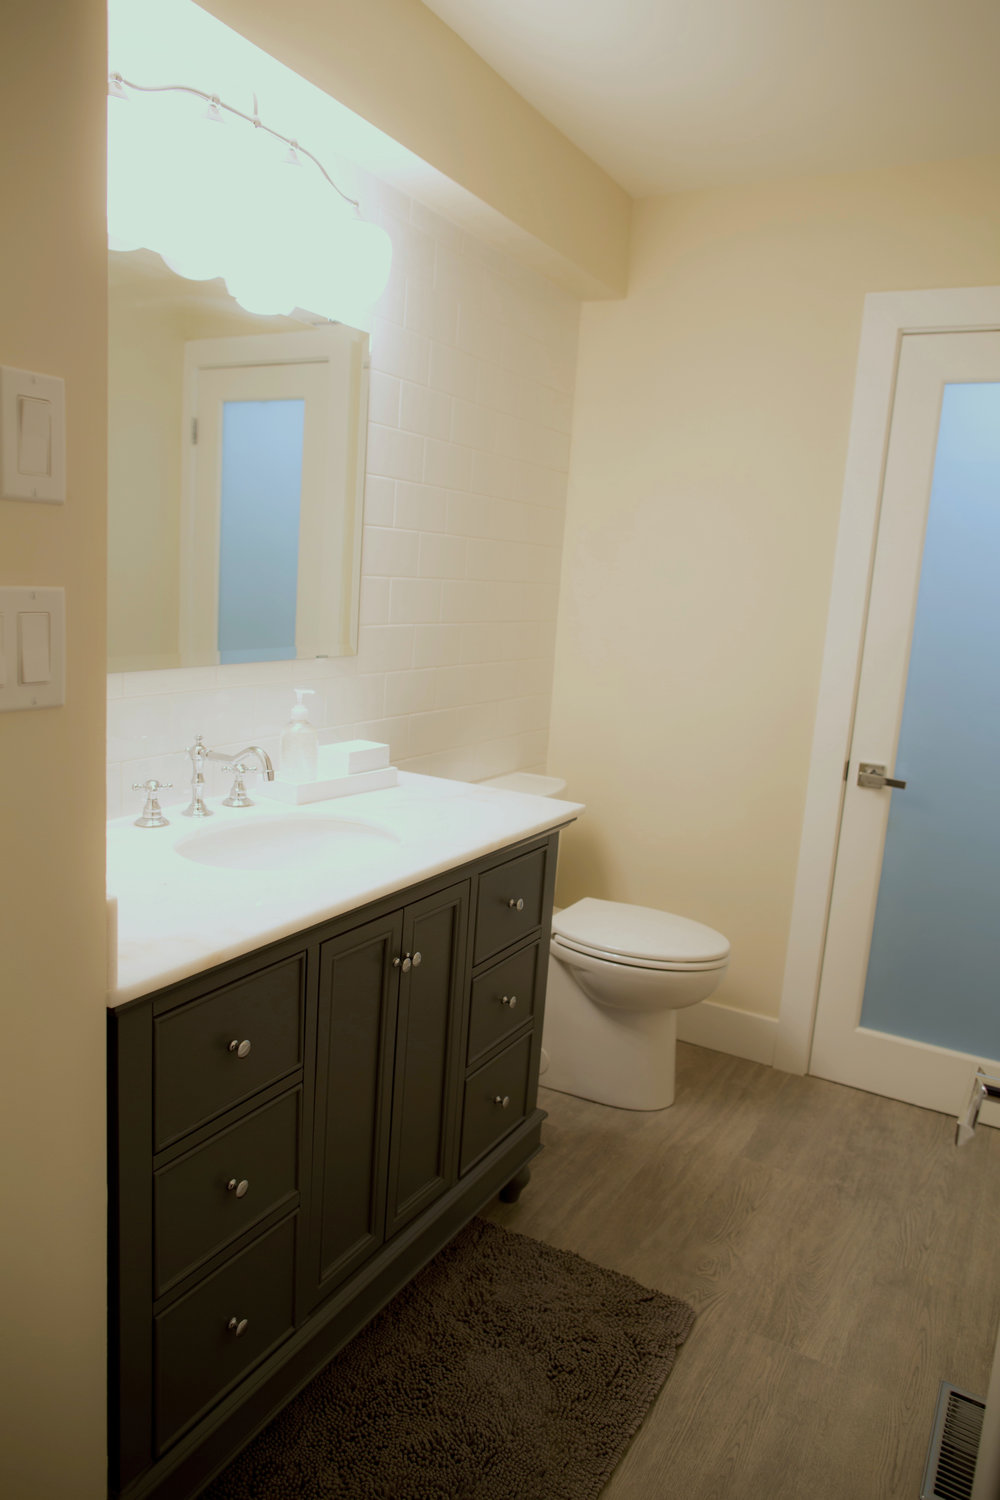 Main bathroom - Elegant vanity, subway tile backsplash and a new lease on life.